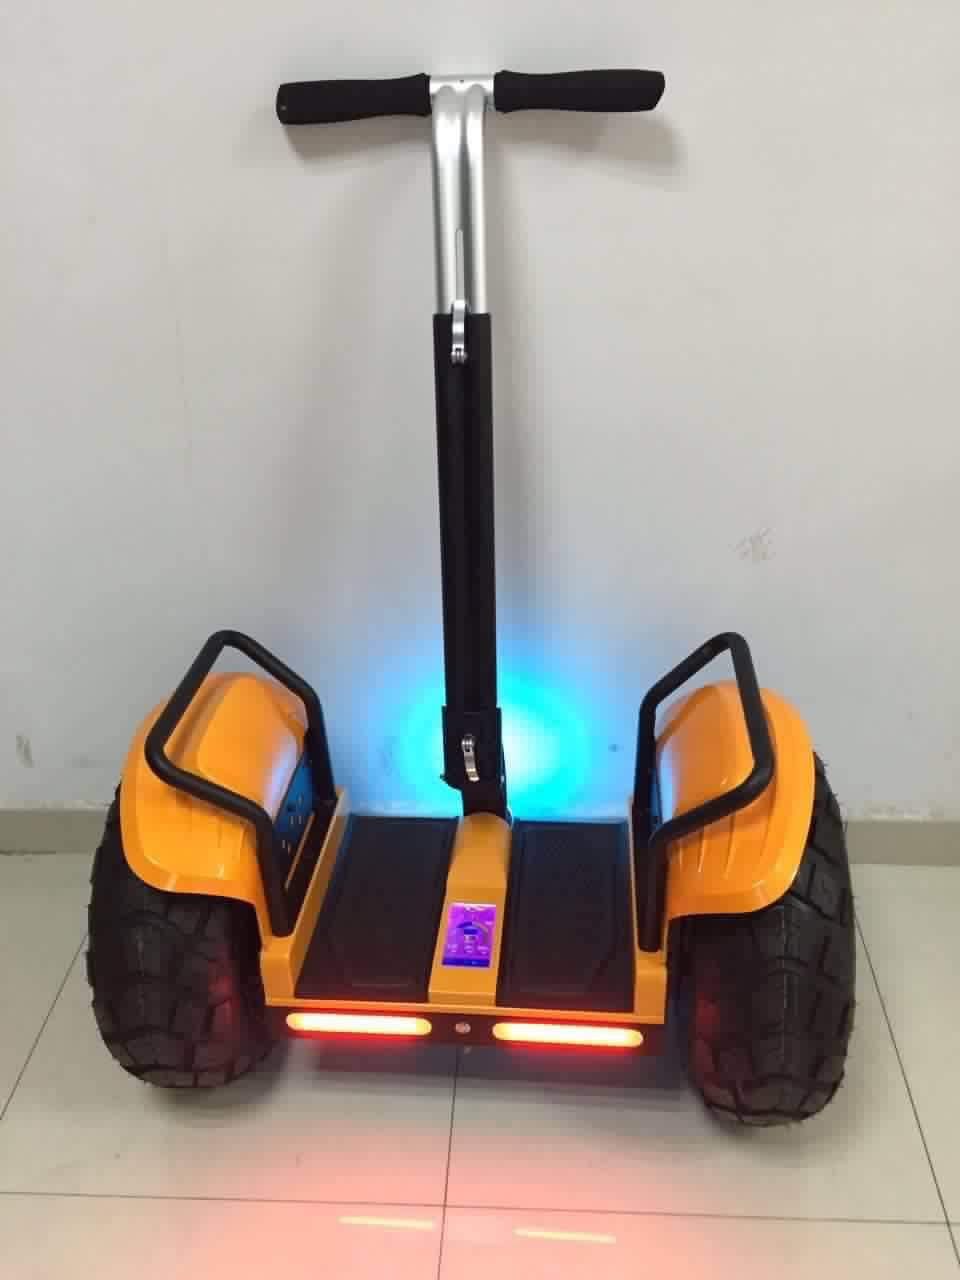 2015 Newest Model Popular Two Wheel off-Road Electric Motorcycle Scooter Ourdoors with LED Screen